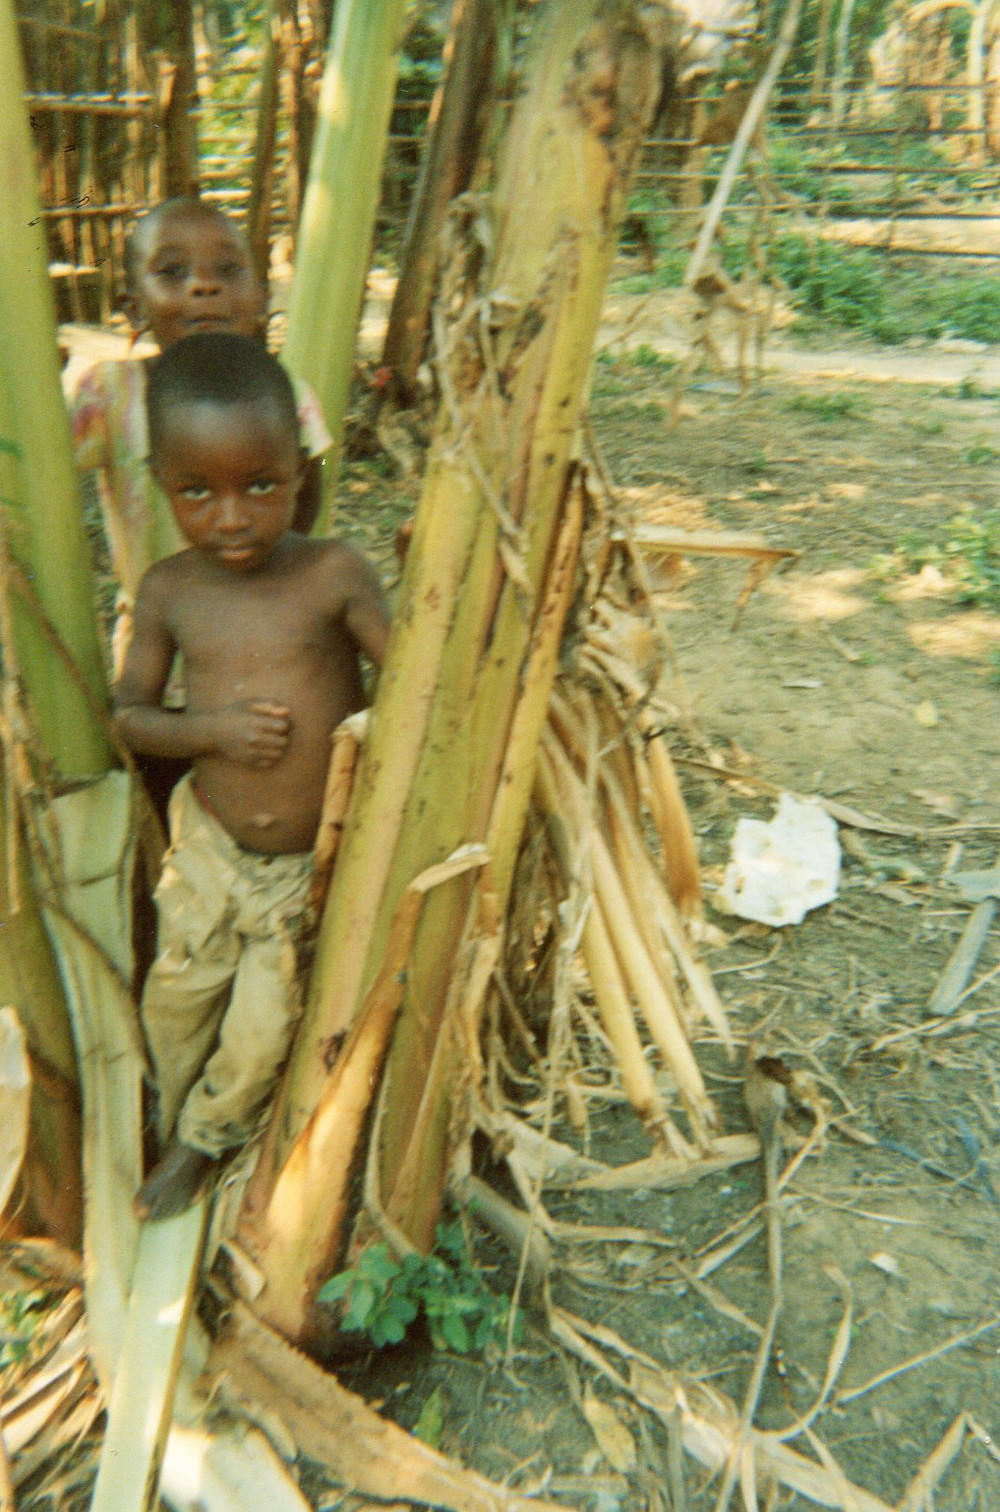 The difficulty that kids have is to not have food and this is why they go in the forest to look for food.